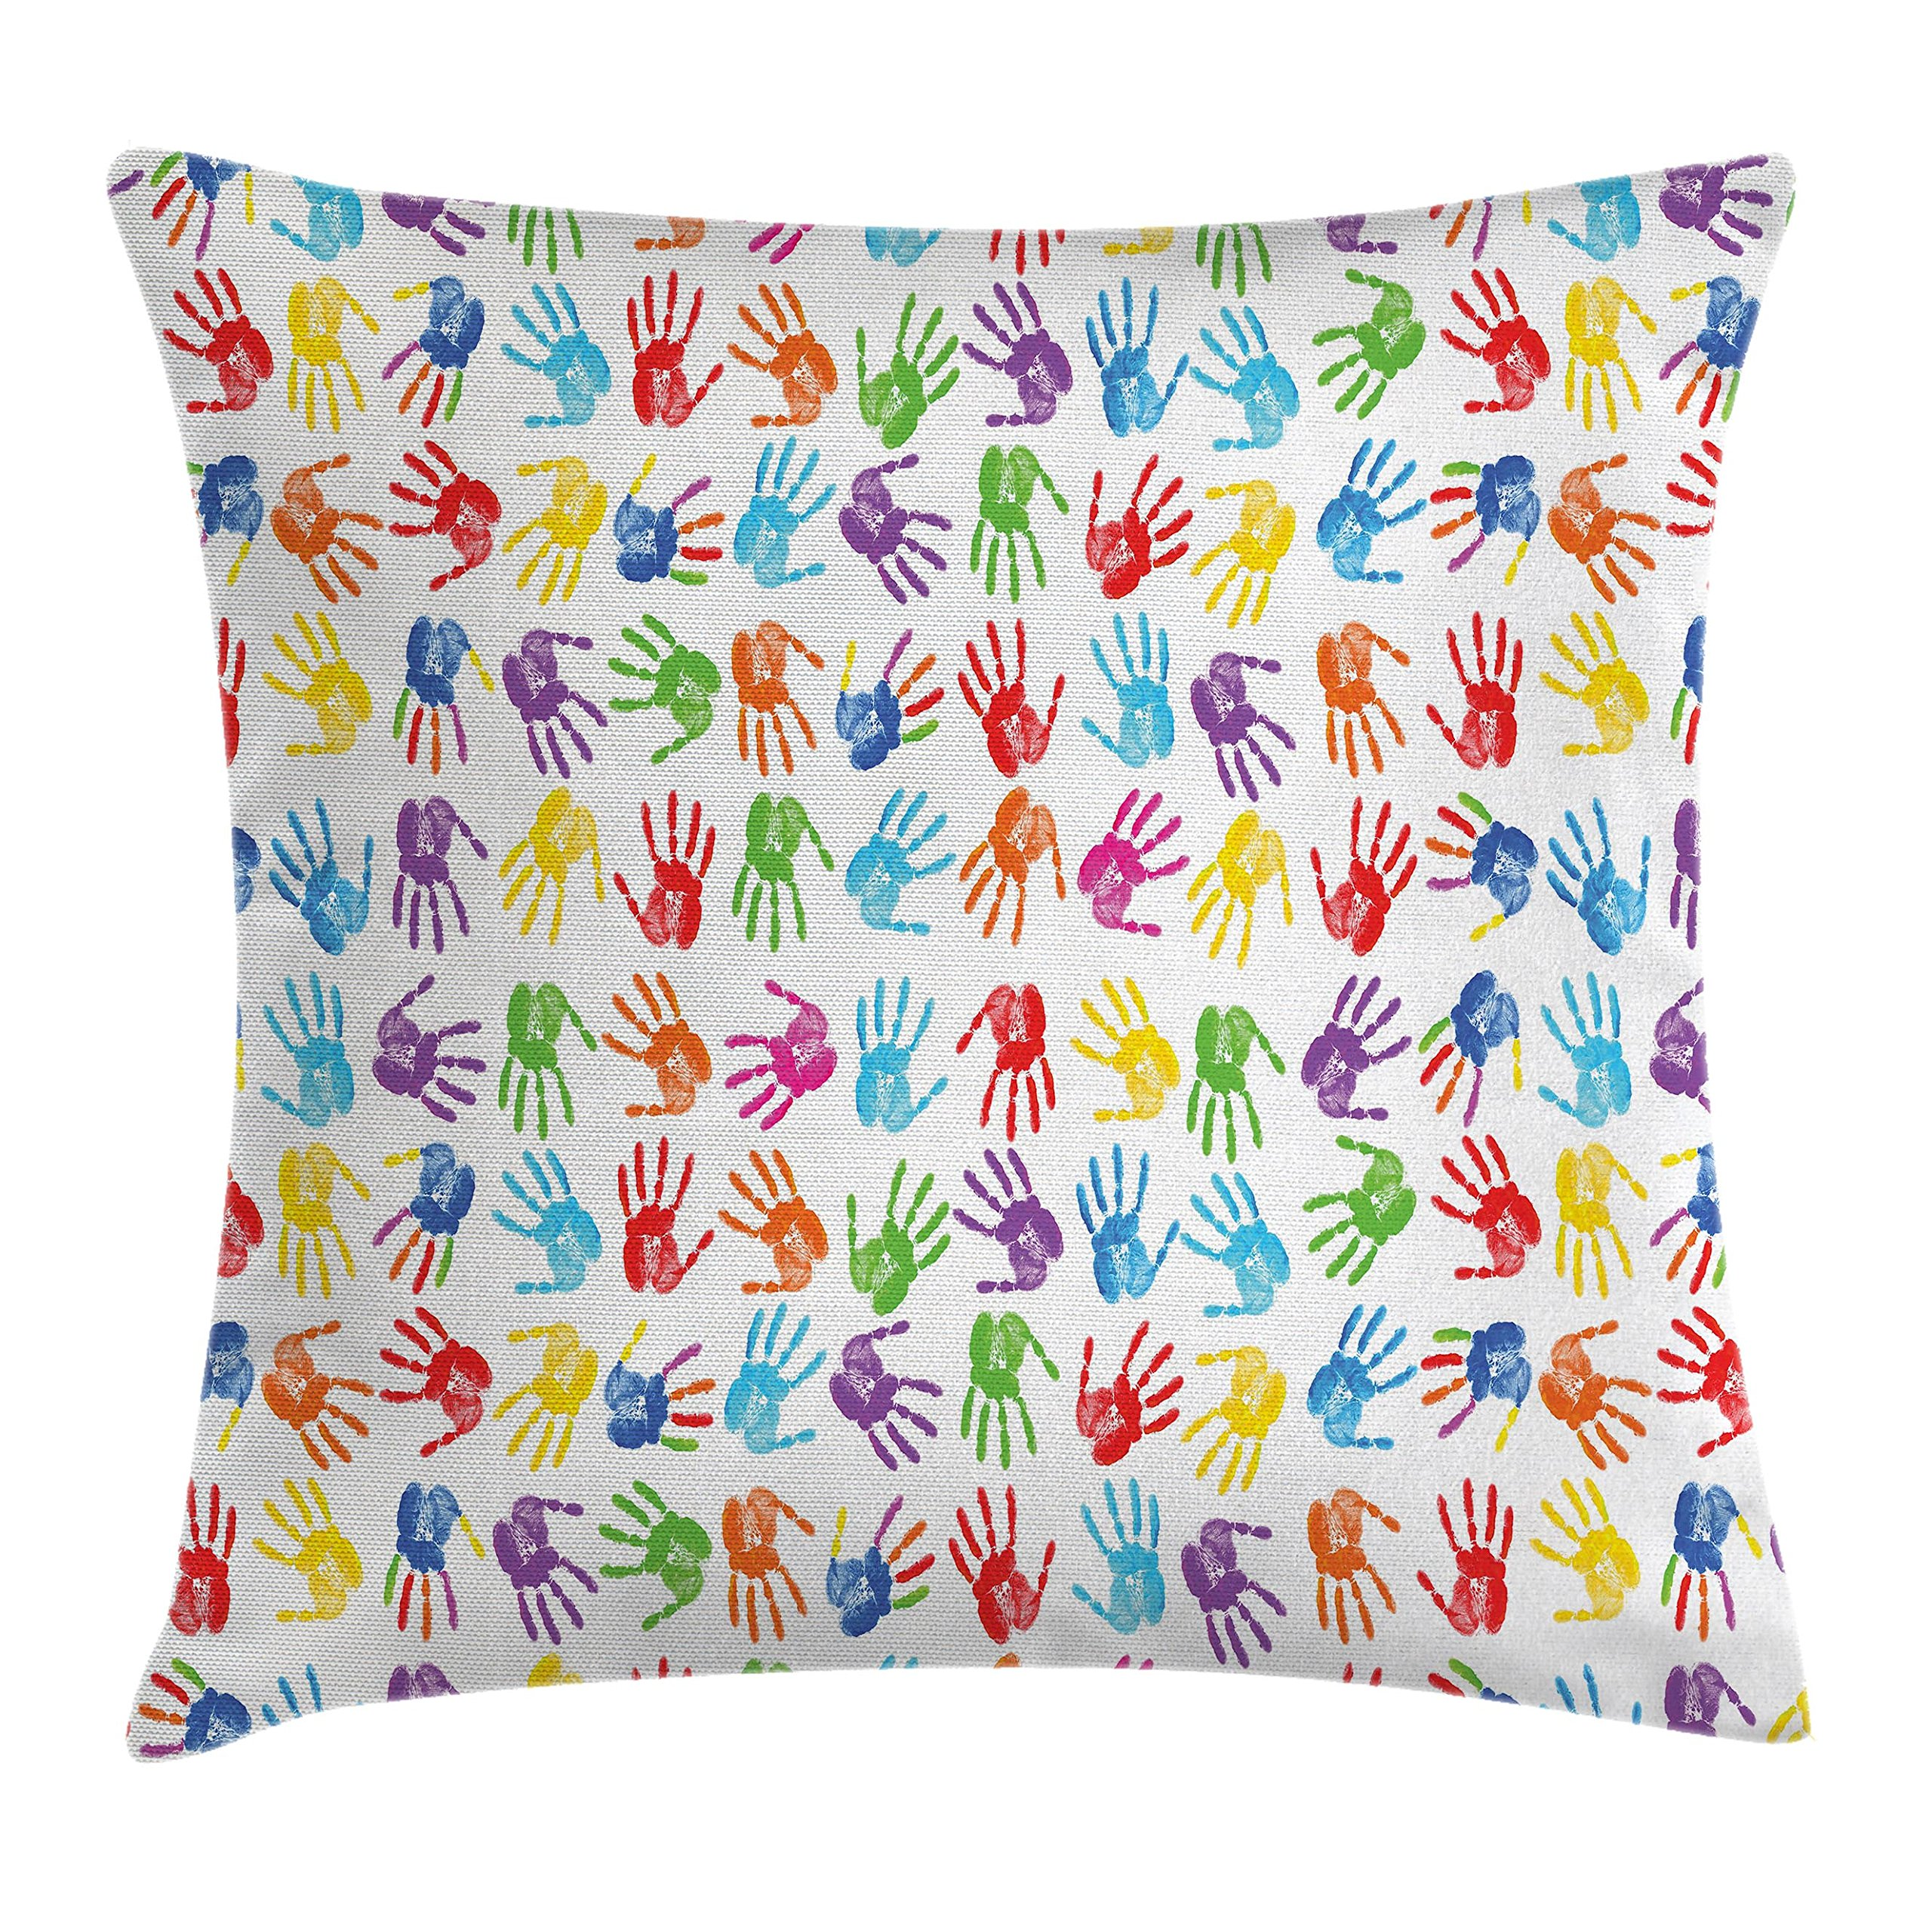 Ambesonne Colorful Decor Throw Pillow Cushion Cover, Human Handprint Kids Watercolor Paint Effect Open Palms Collage Art Work Print, Decorative Square Accent Pillow Case, 20 X 20 Inches, Multi